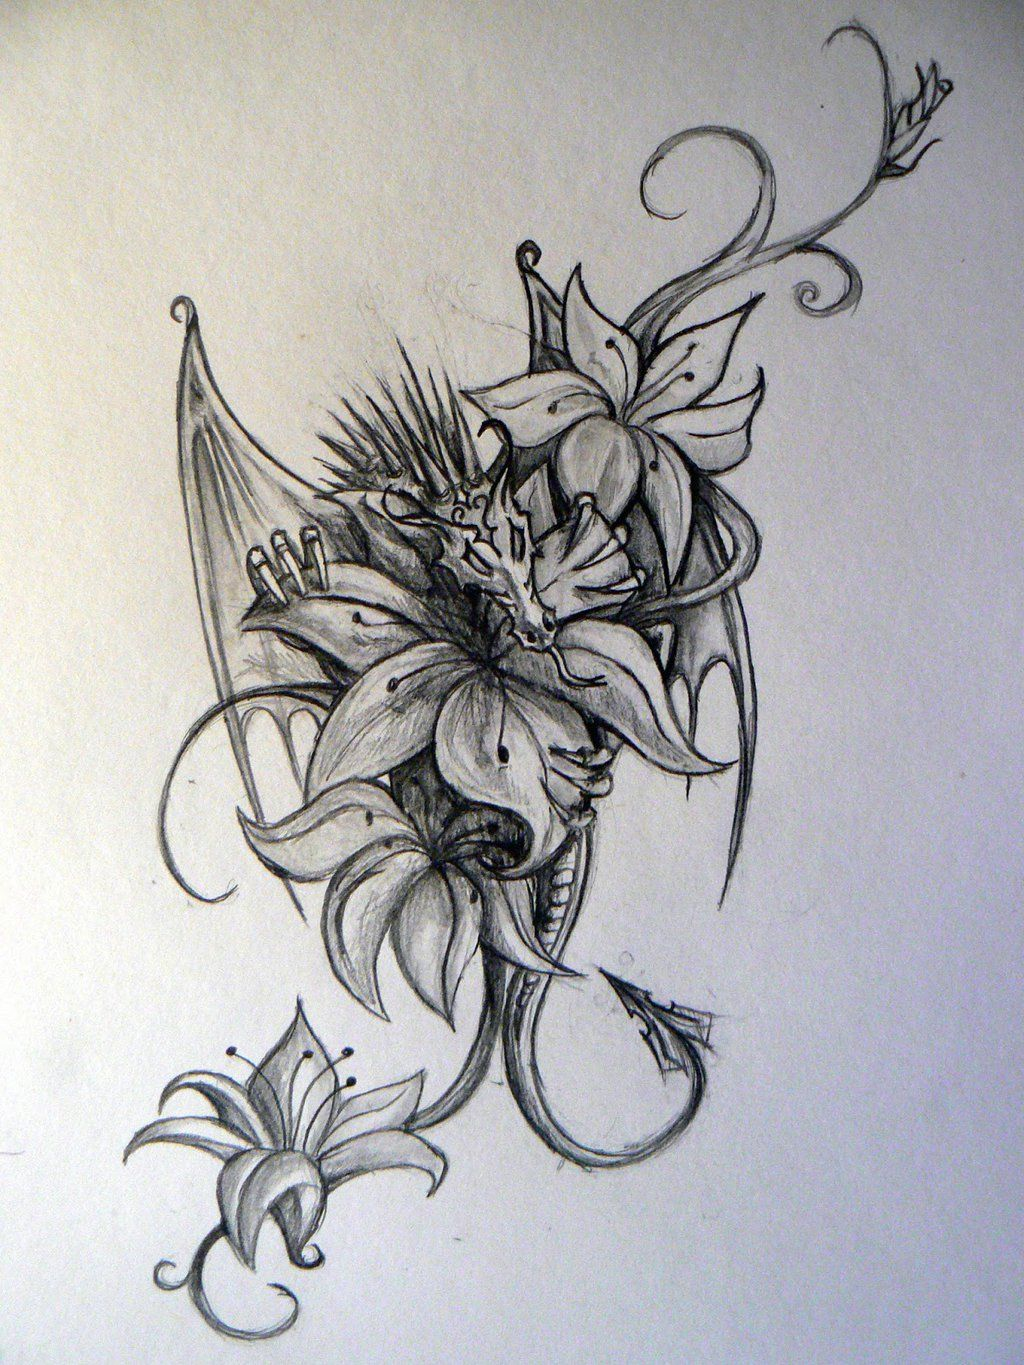 Dragon Tattoo With Flowers: 60+ Dragon And Flowers Tattoo Designs & Ideas